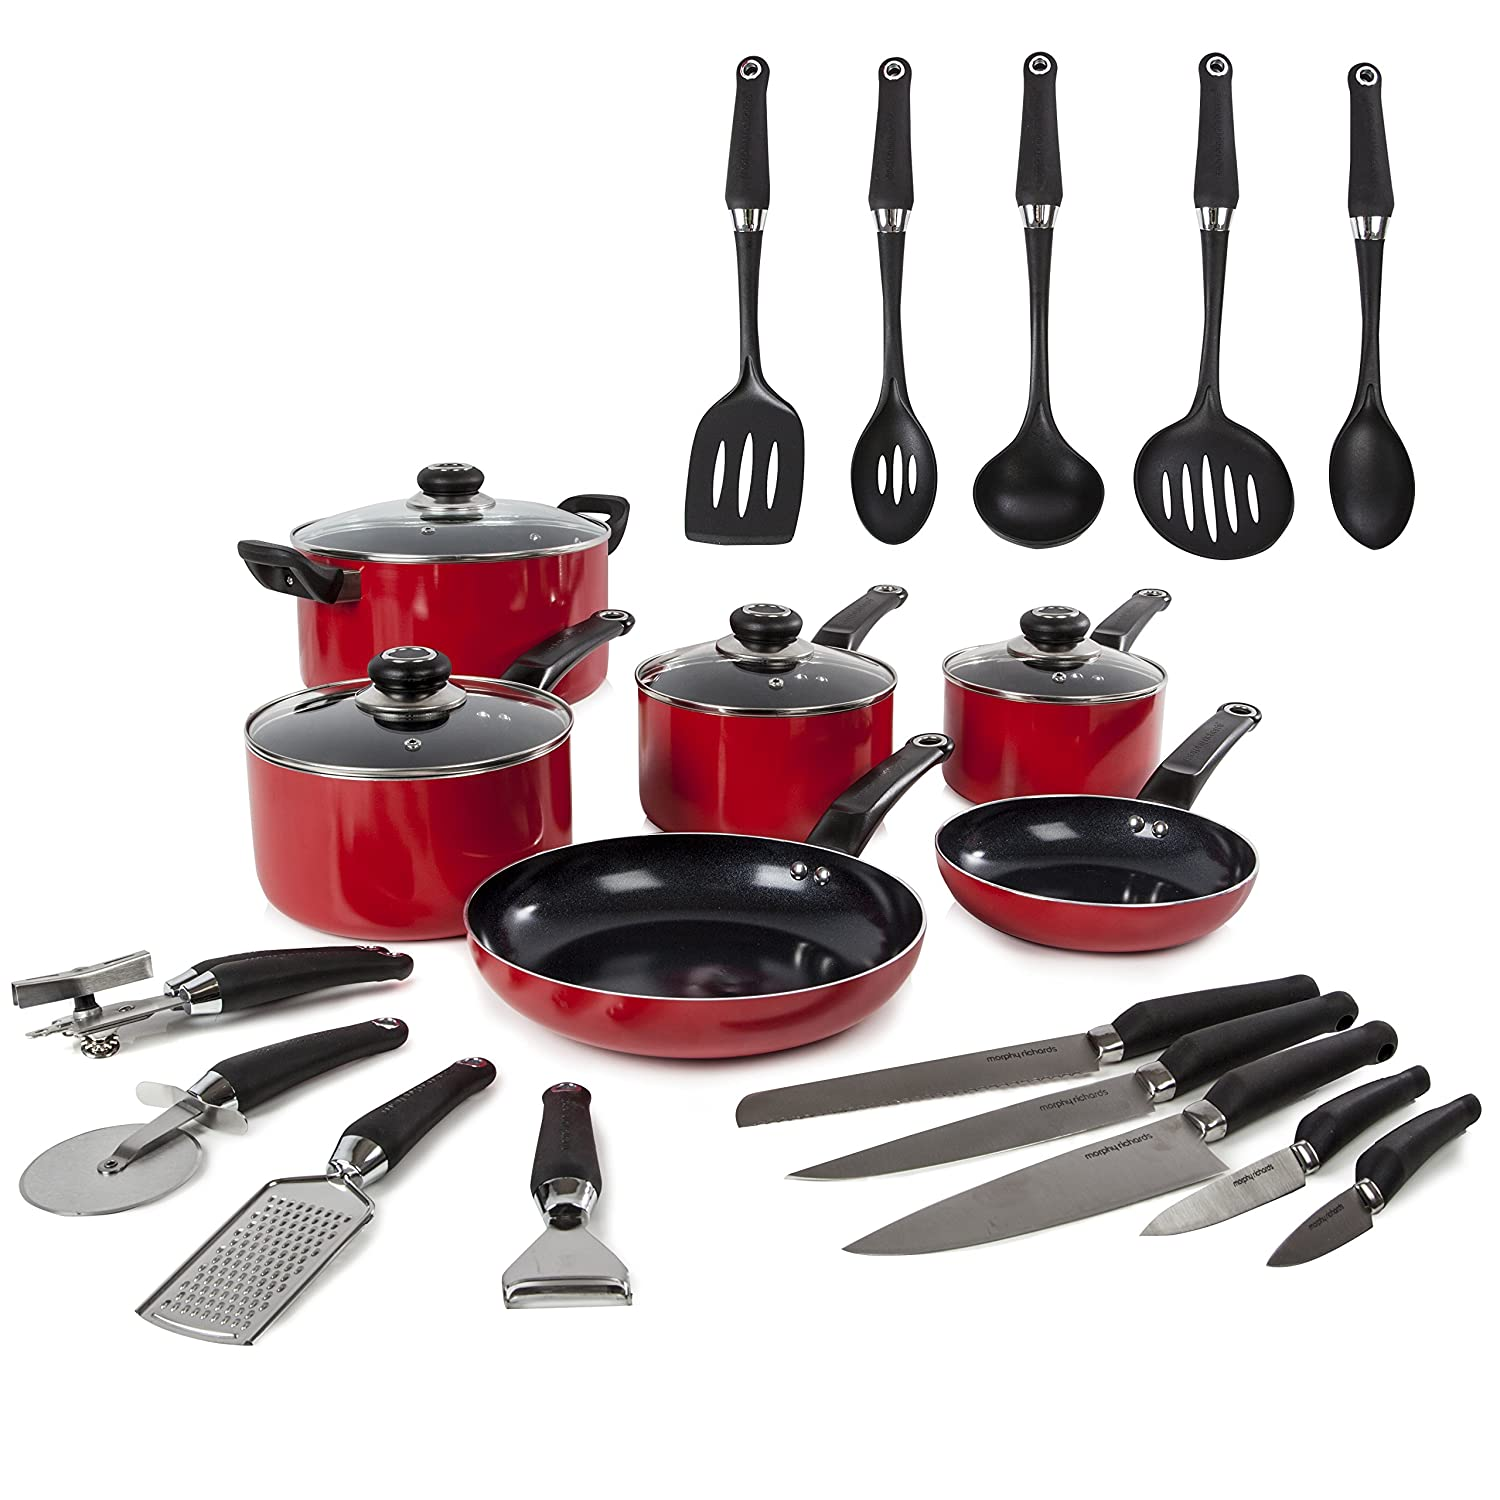 Morphy Richards Equip 6 Piece Pan Set with 14 Piece Tool Set - Red 970051